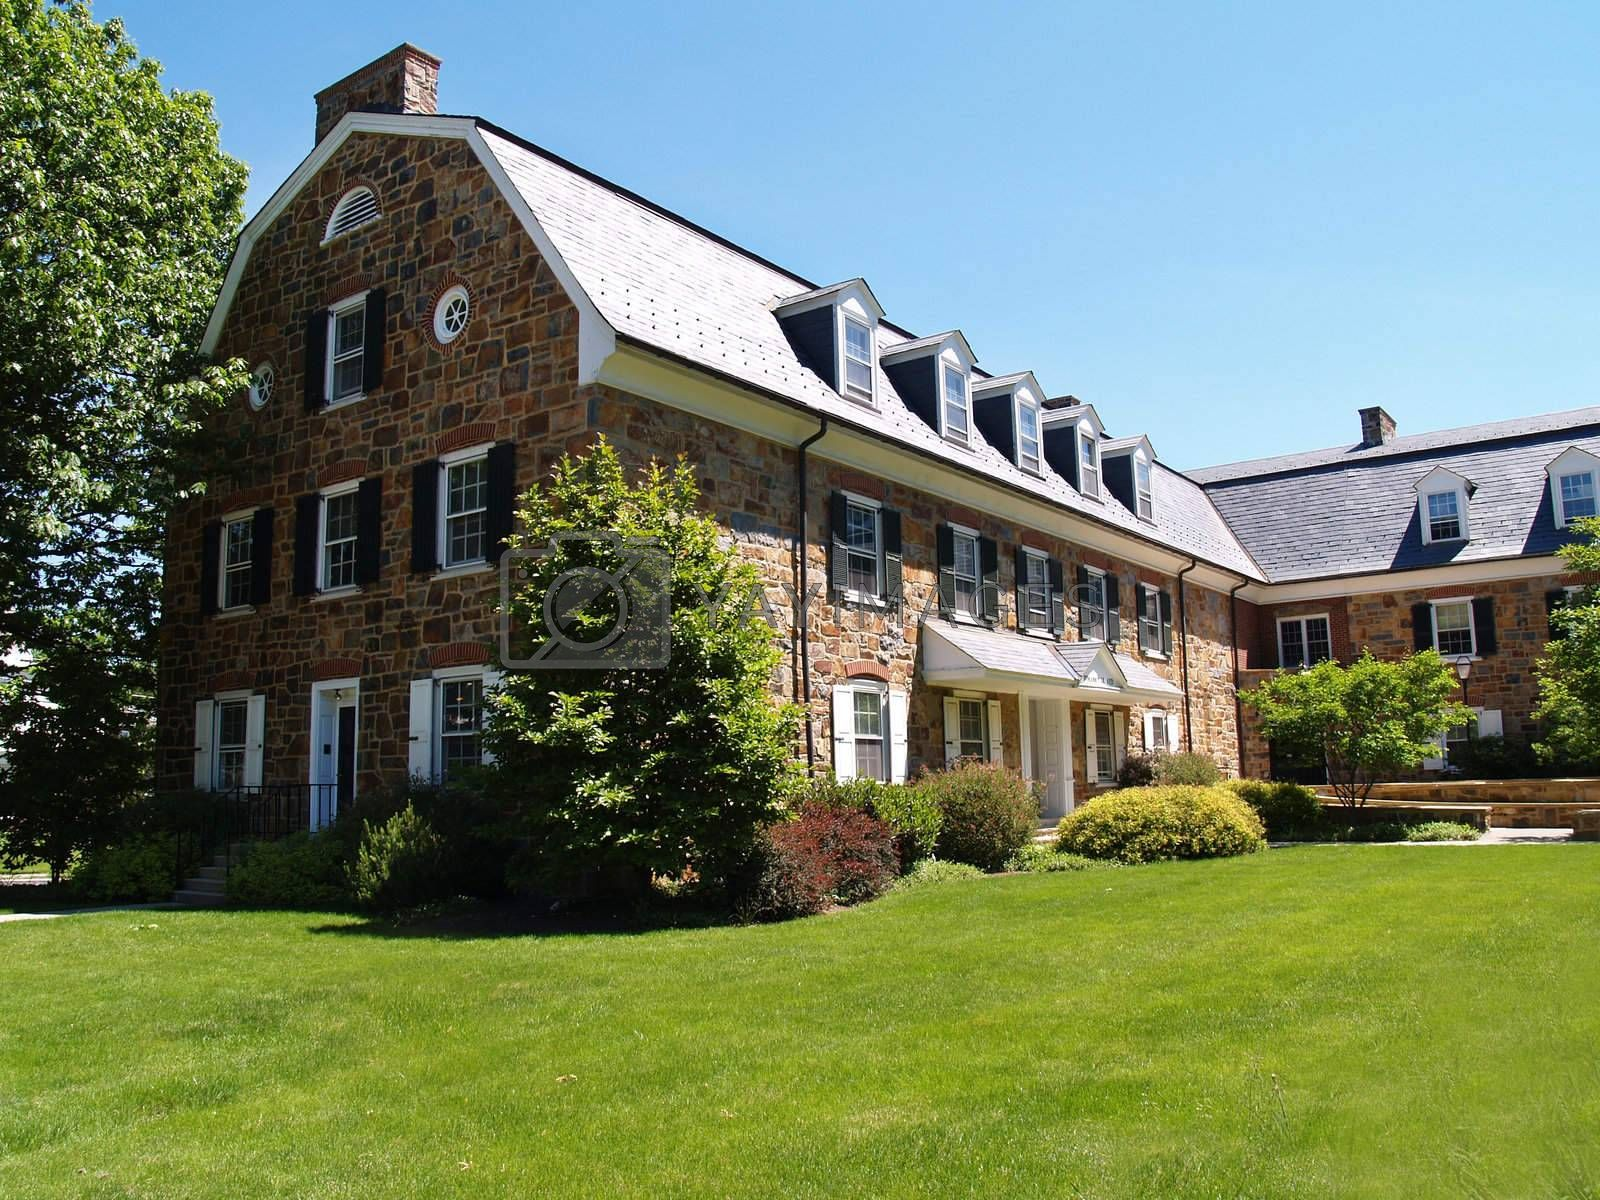 an old colonial style stone building with a gambrel roof